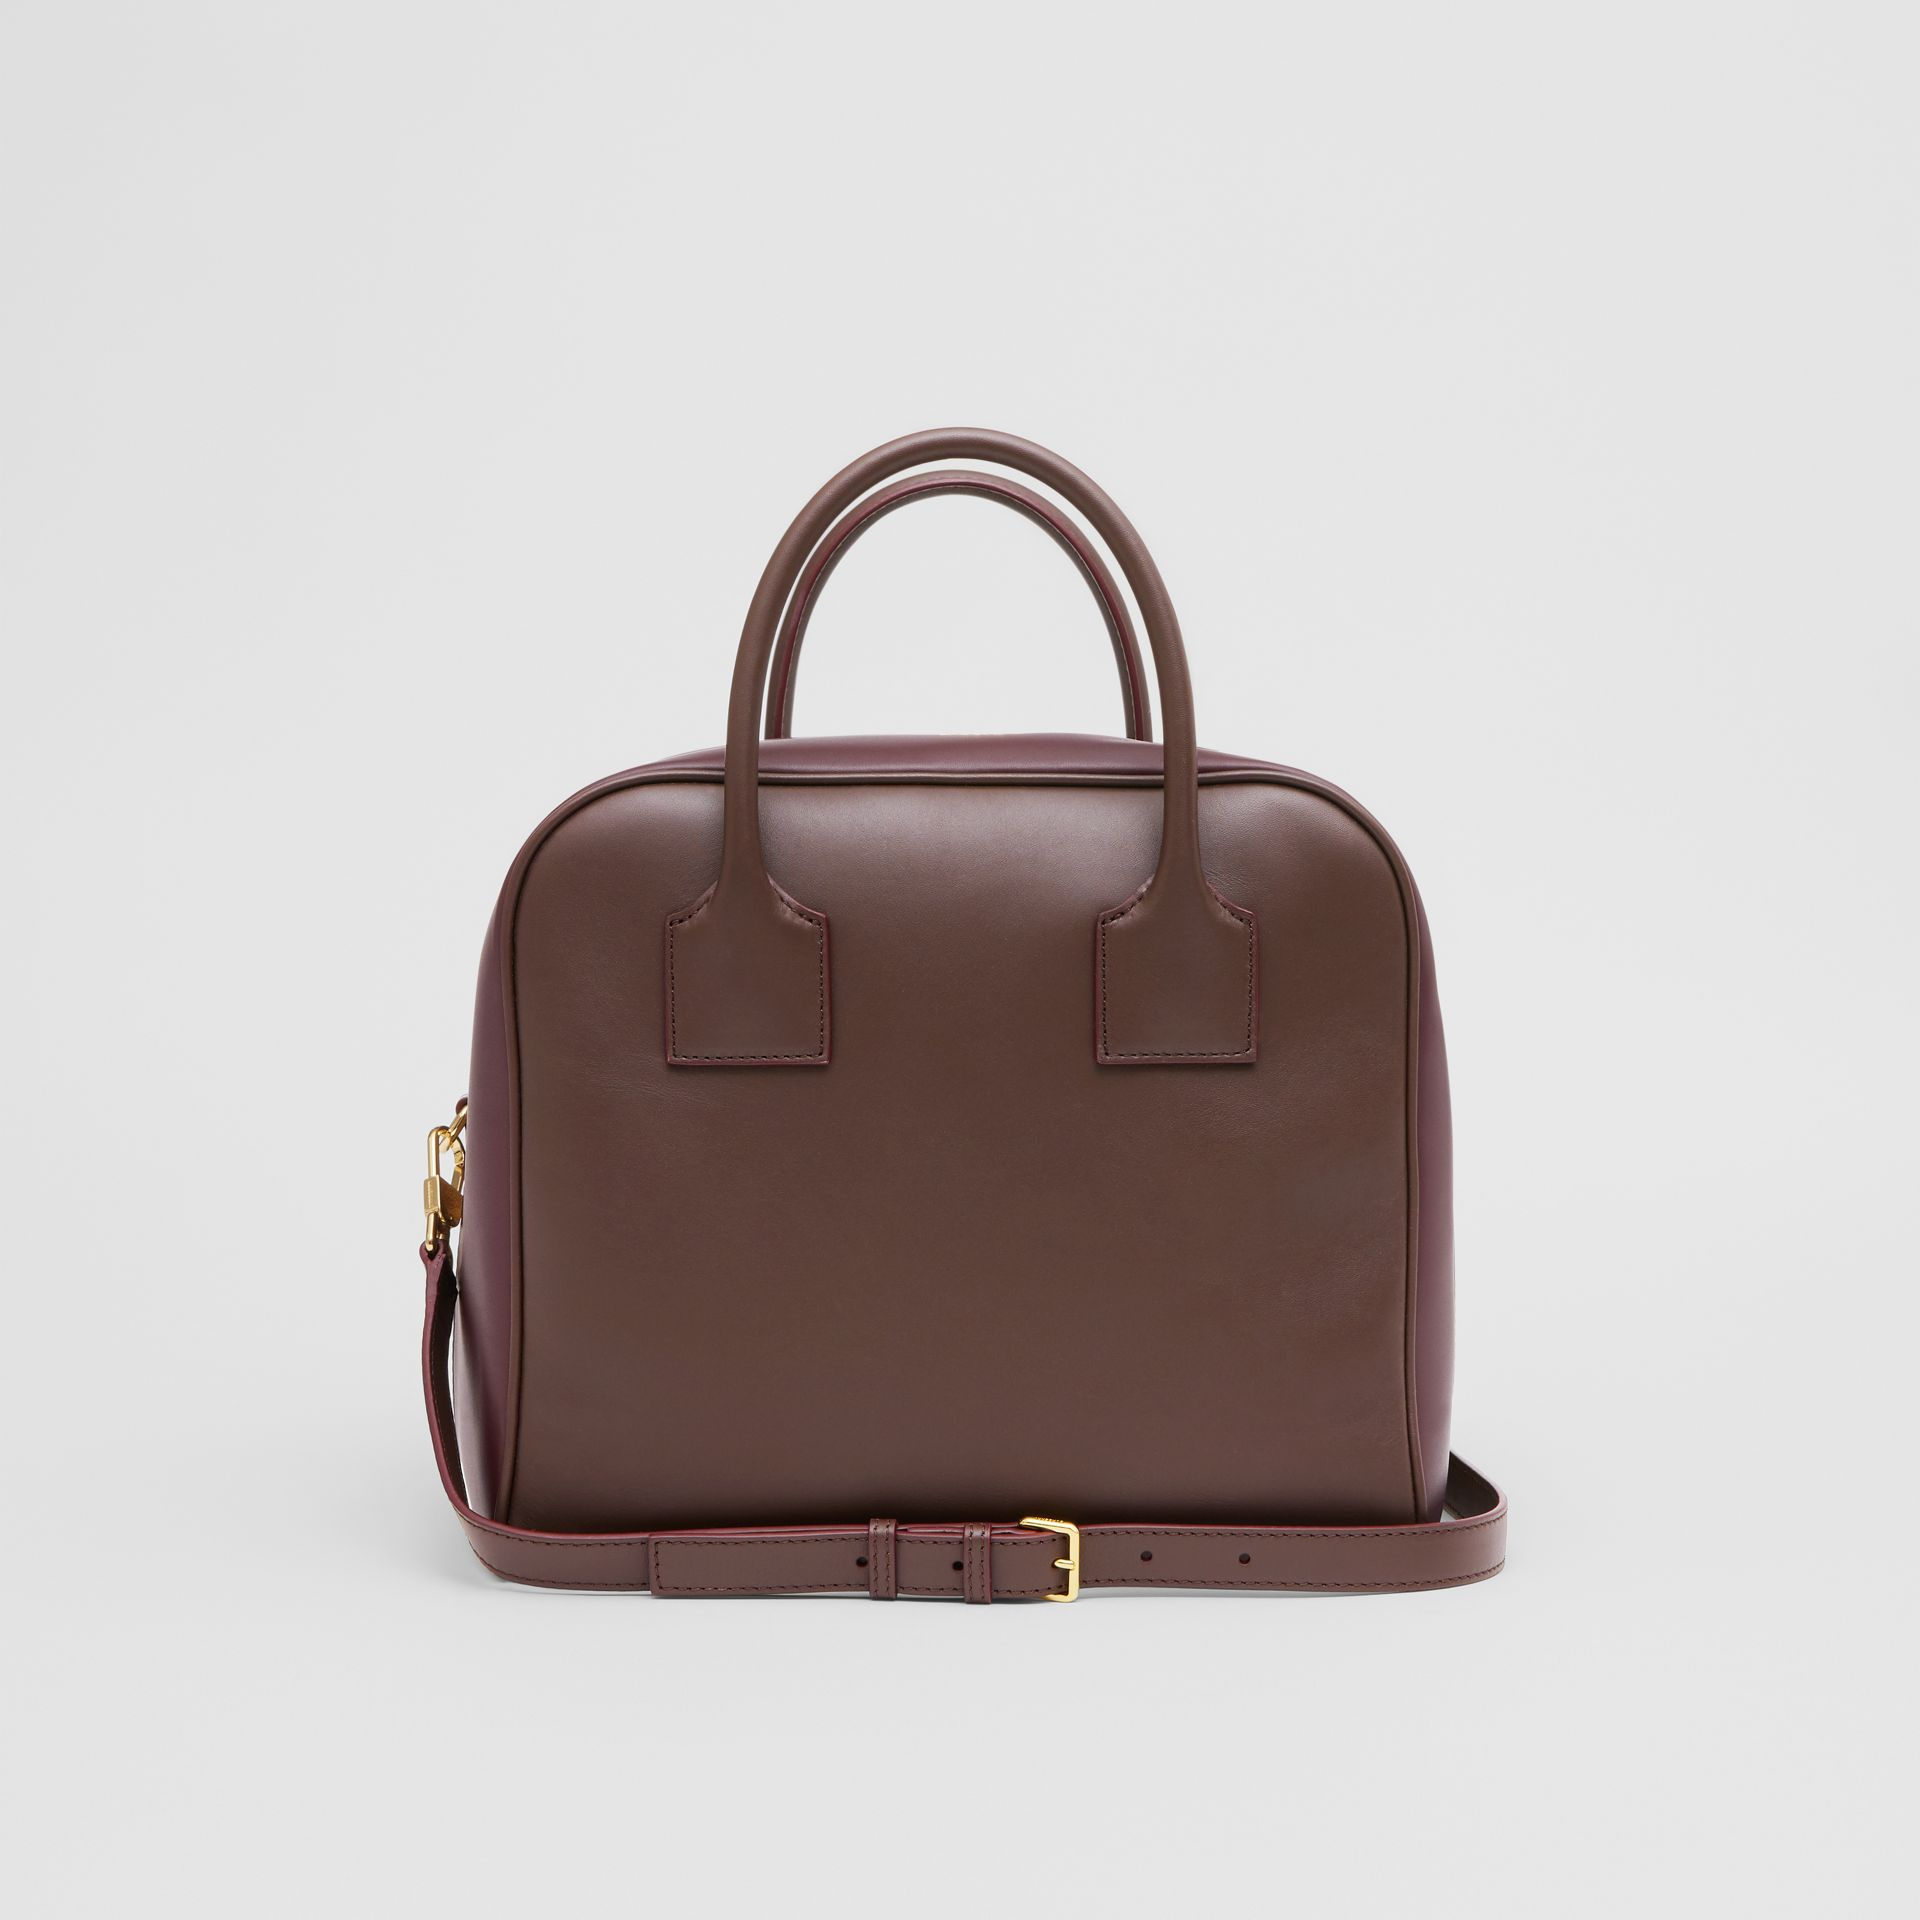 Medium Leather and Suede Cube Bag in Mahogany - Women | Burberry United Kingdom - gallery image 7